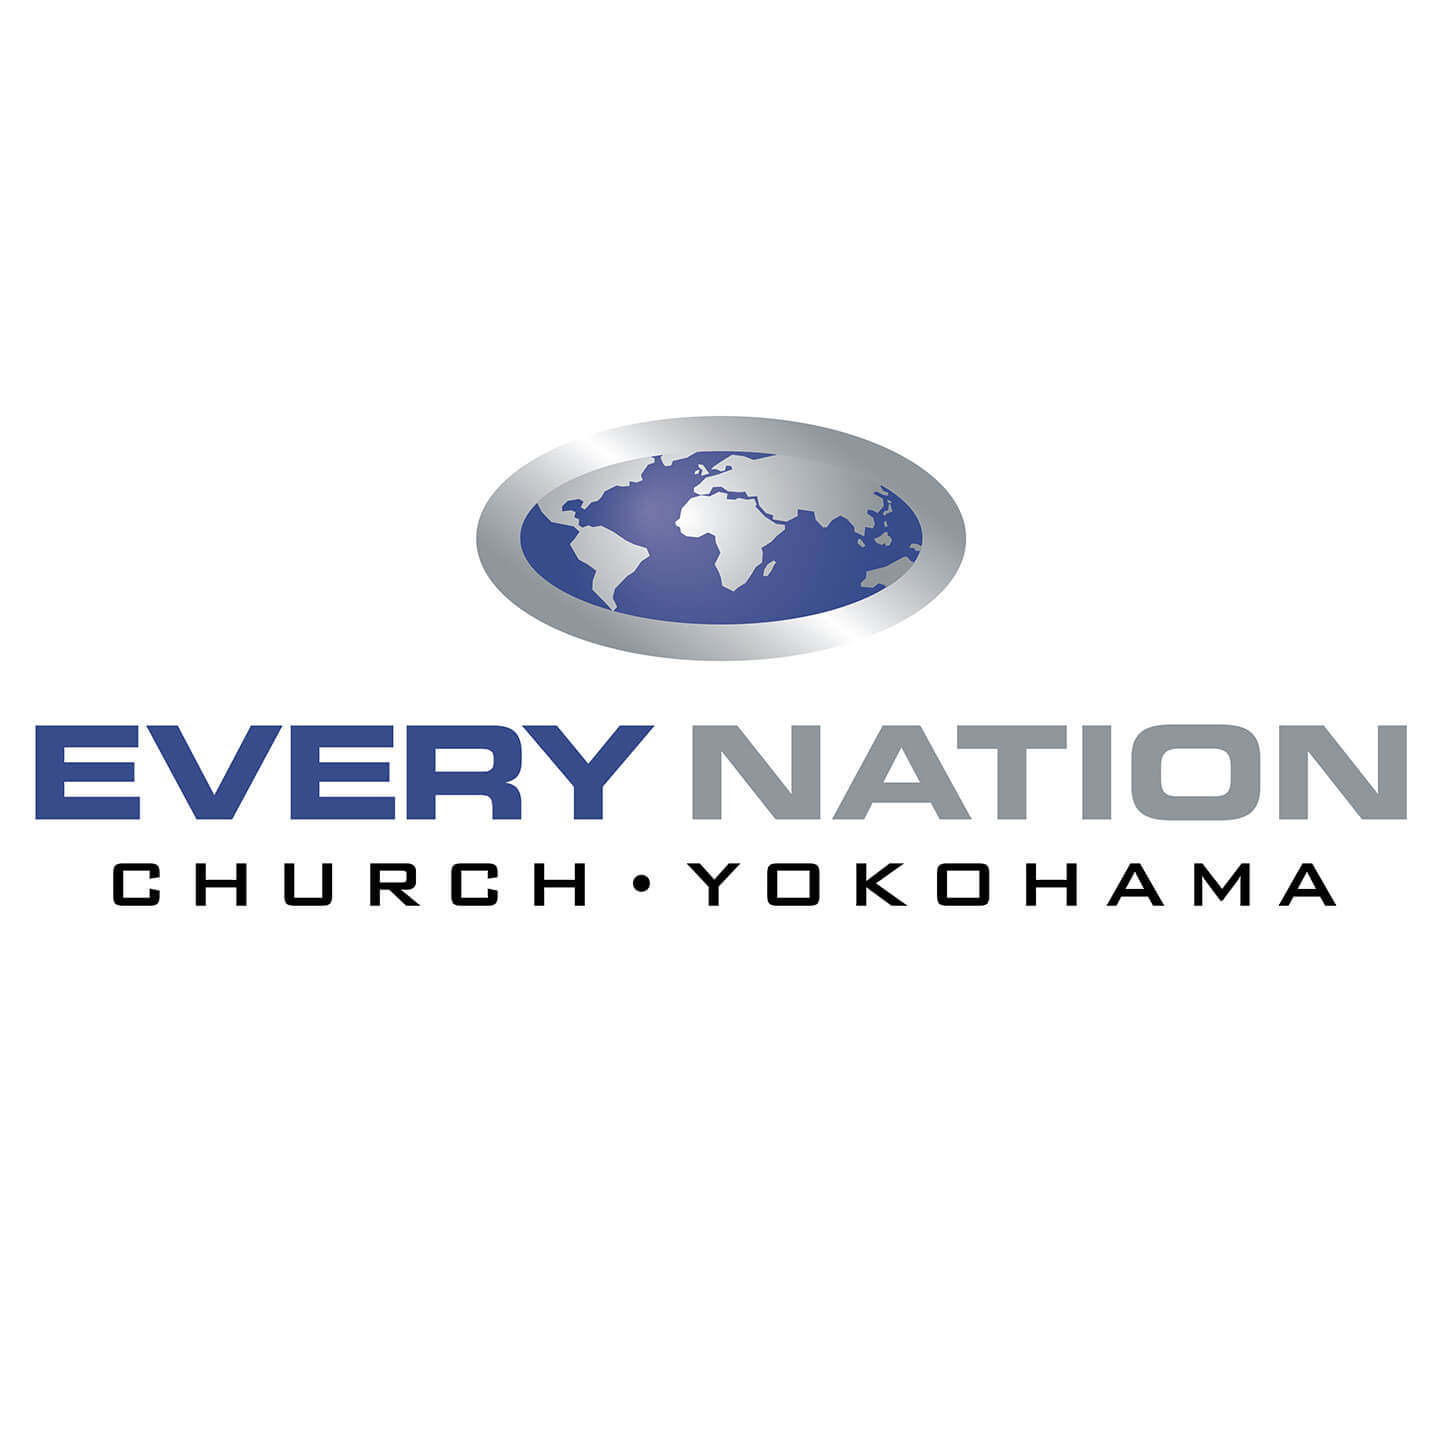 Every Nation Church Yokohama